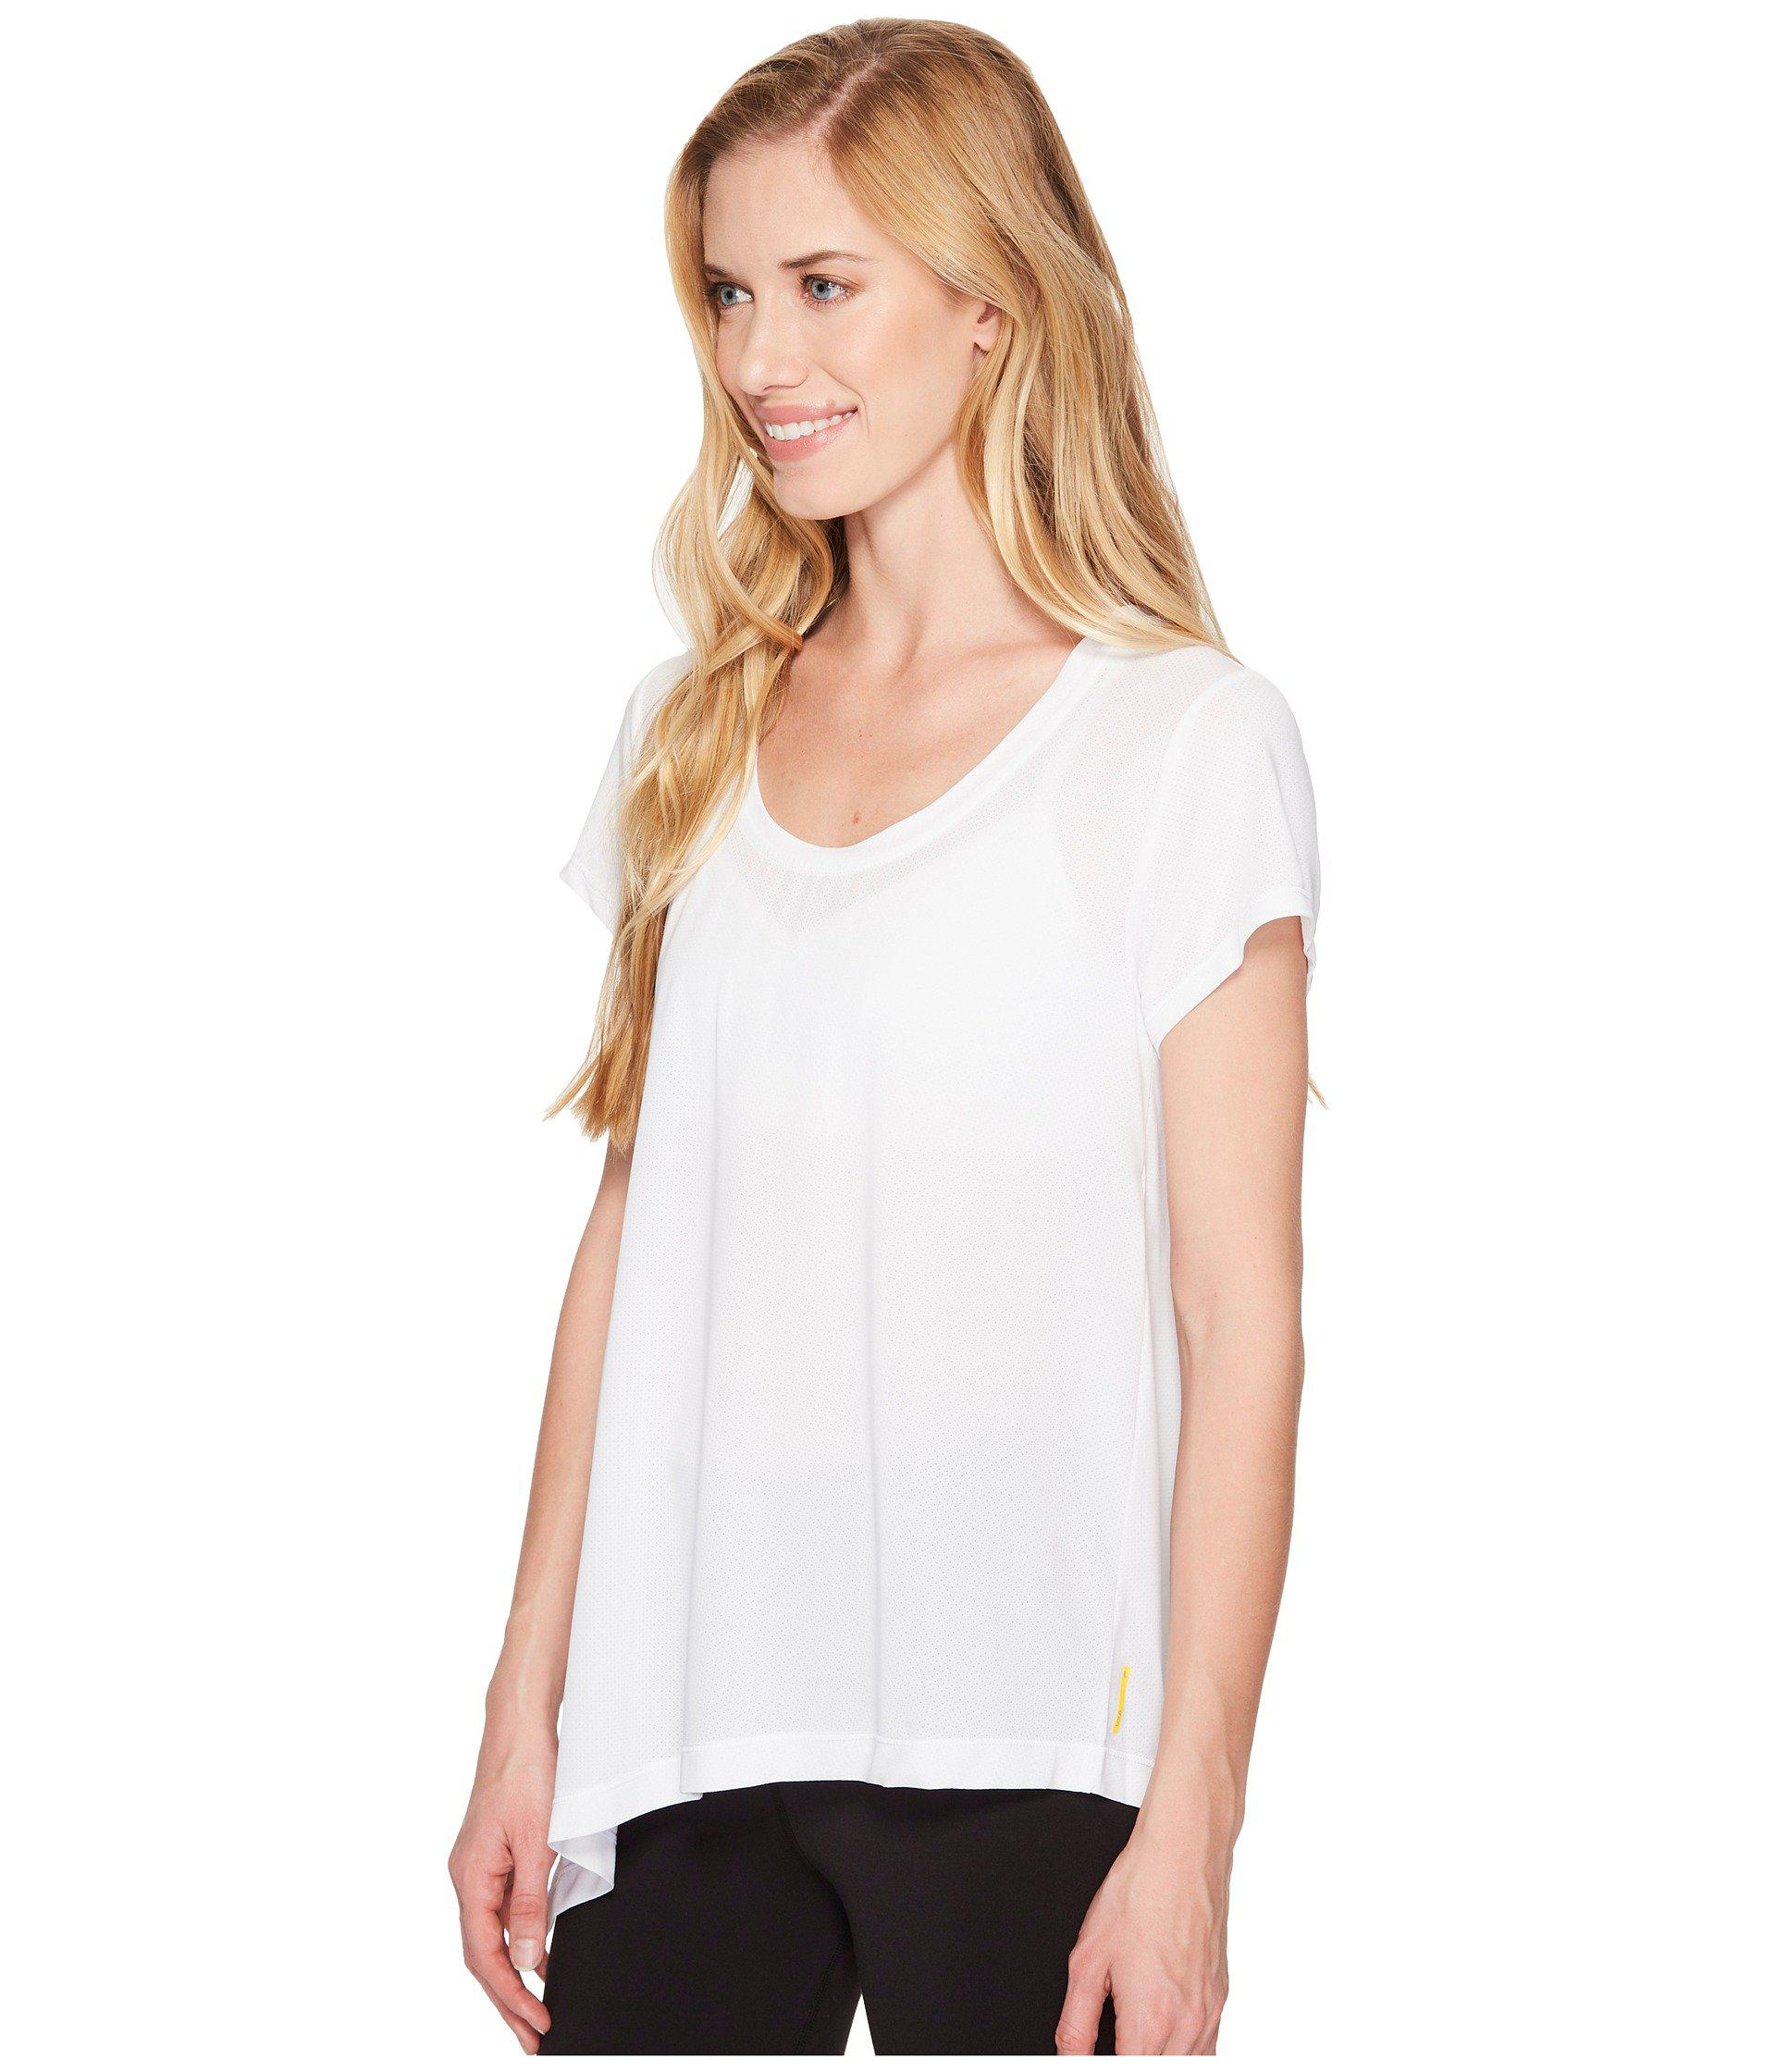 30670c4fa9f Lyst - Lolë Jovi Top in White - Save 43%